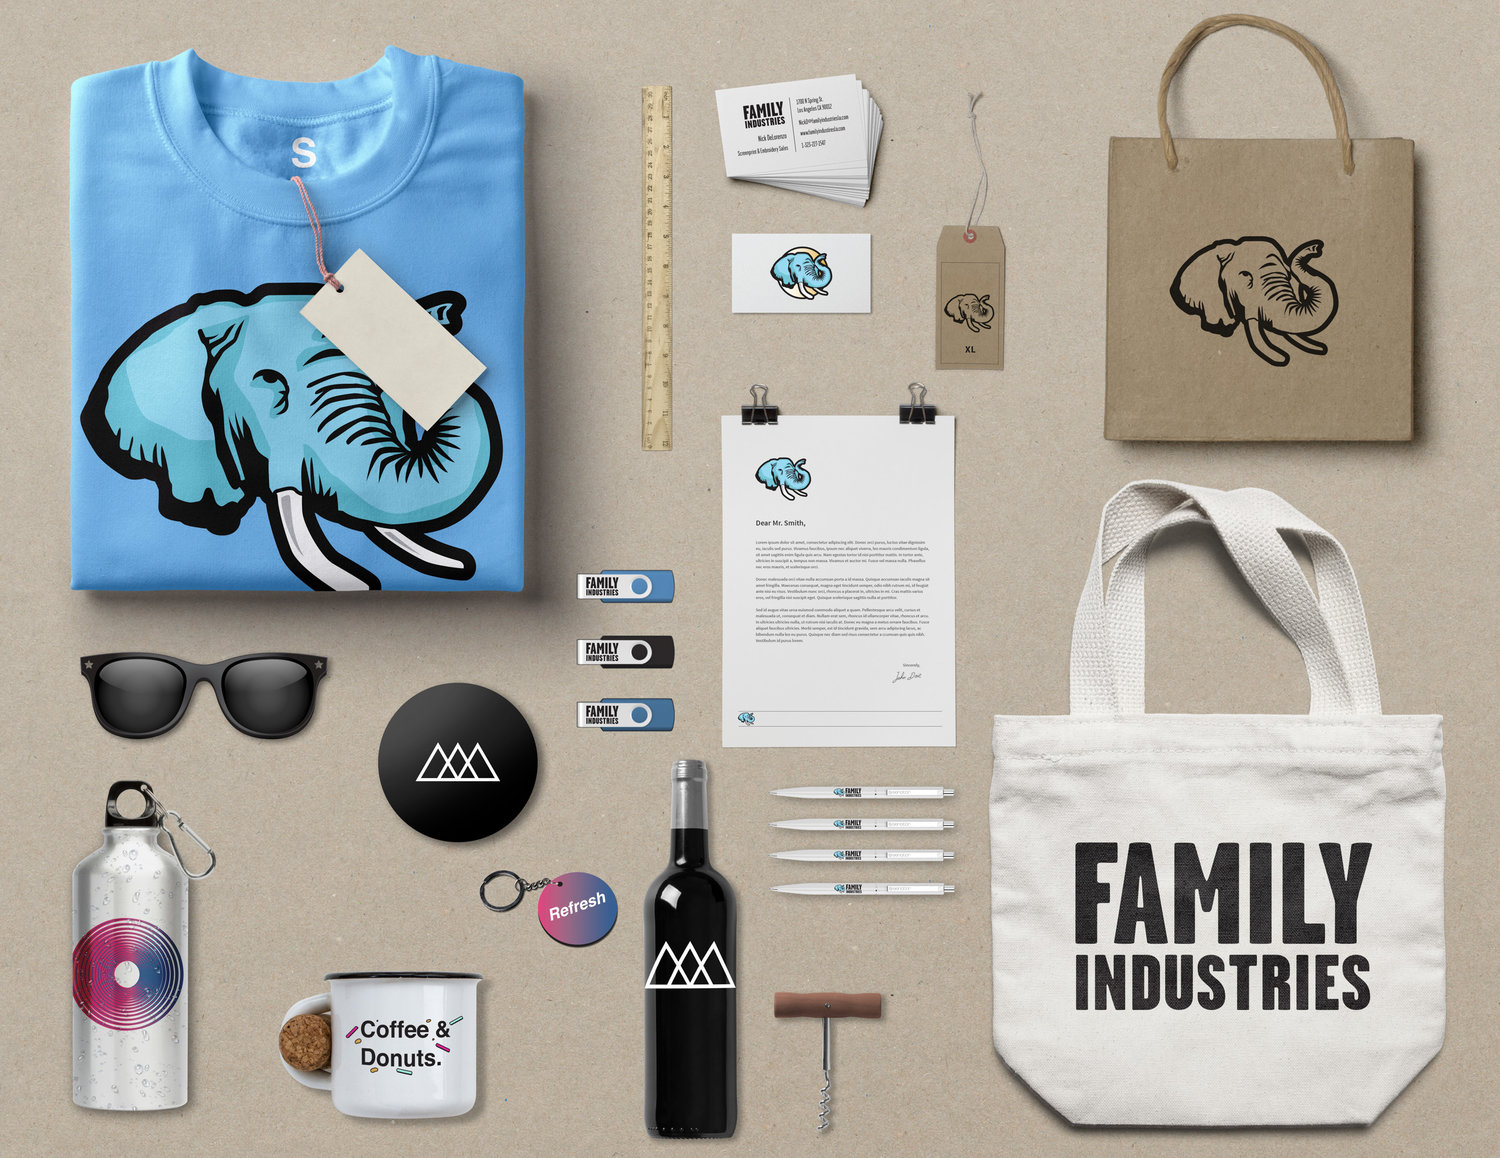 promotional items family industries